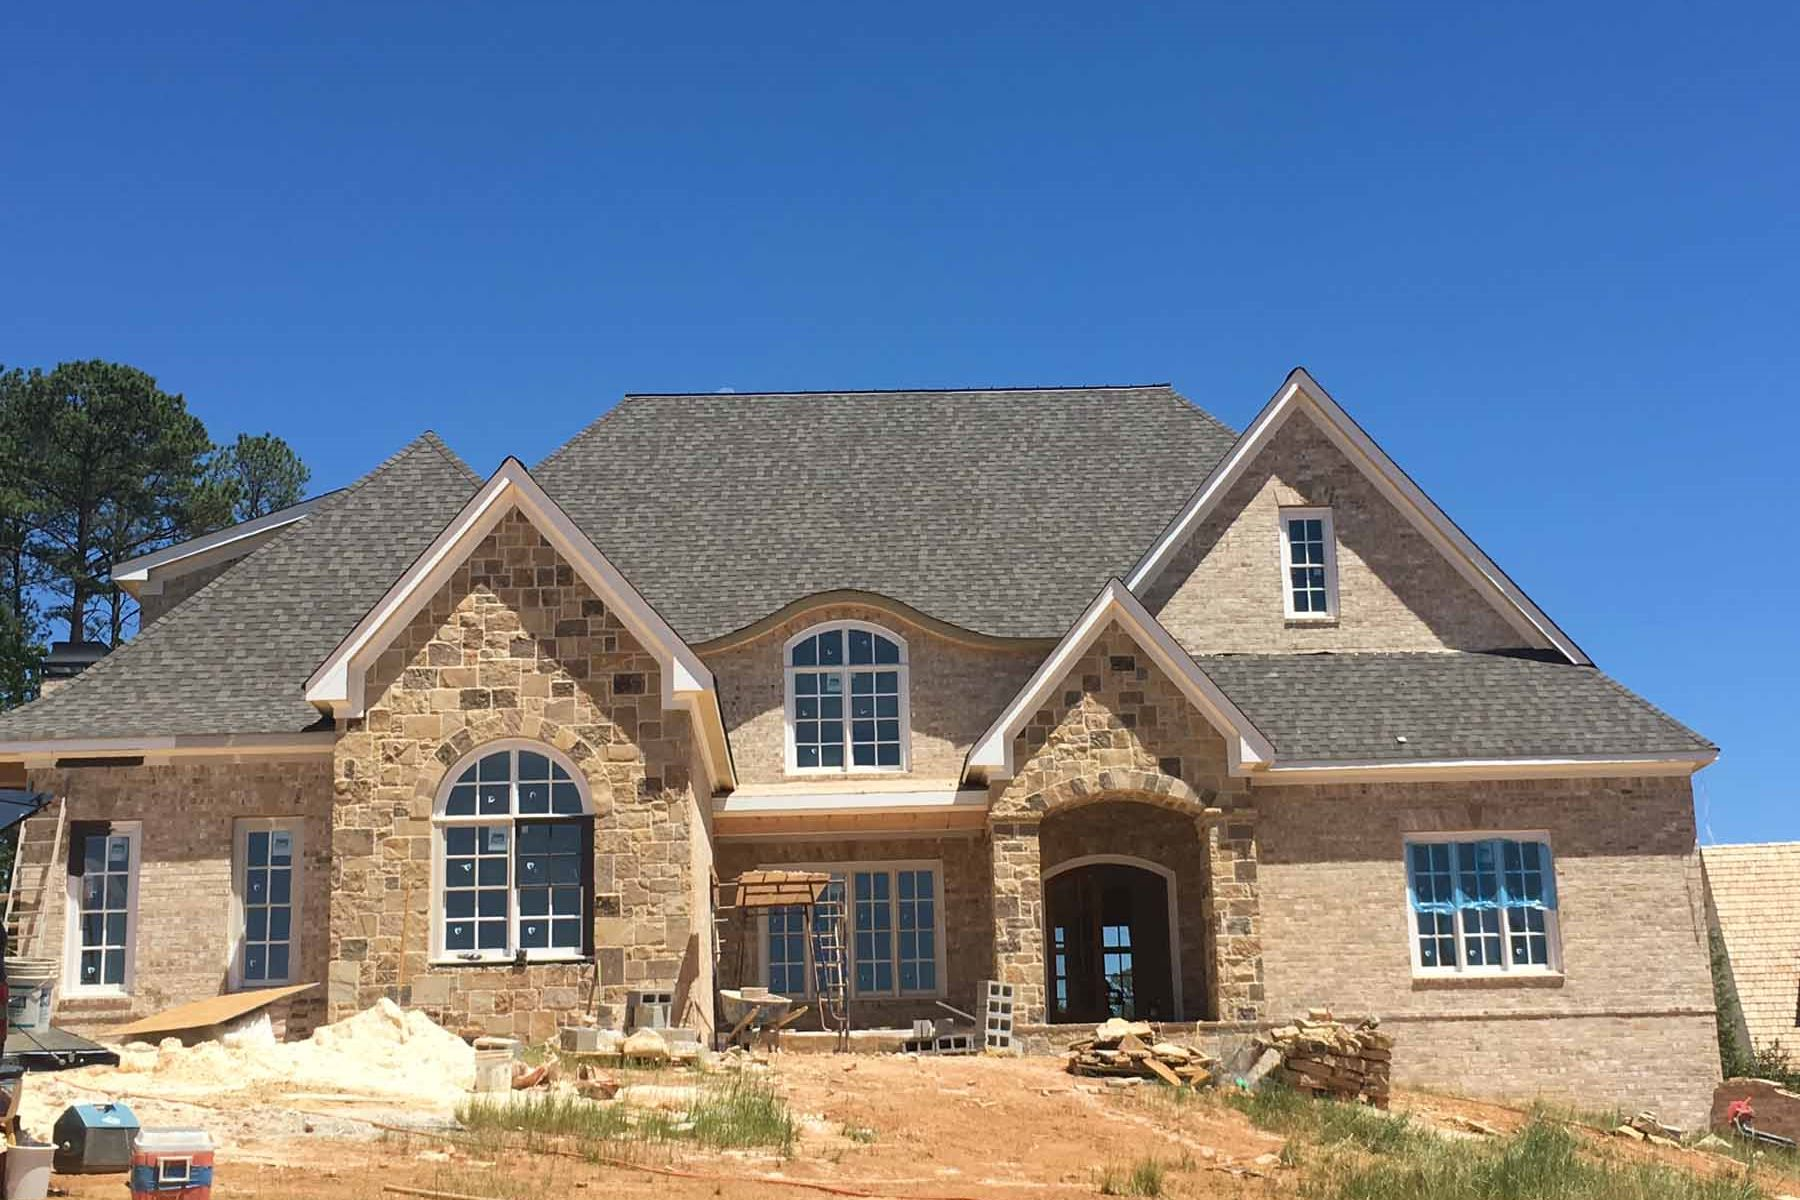 Single Family Home for Sale at New Construction In The Manor Lot 78 Kings Close Cumming, Georgia, 30040 United States